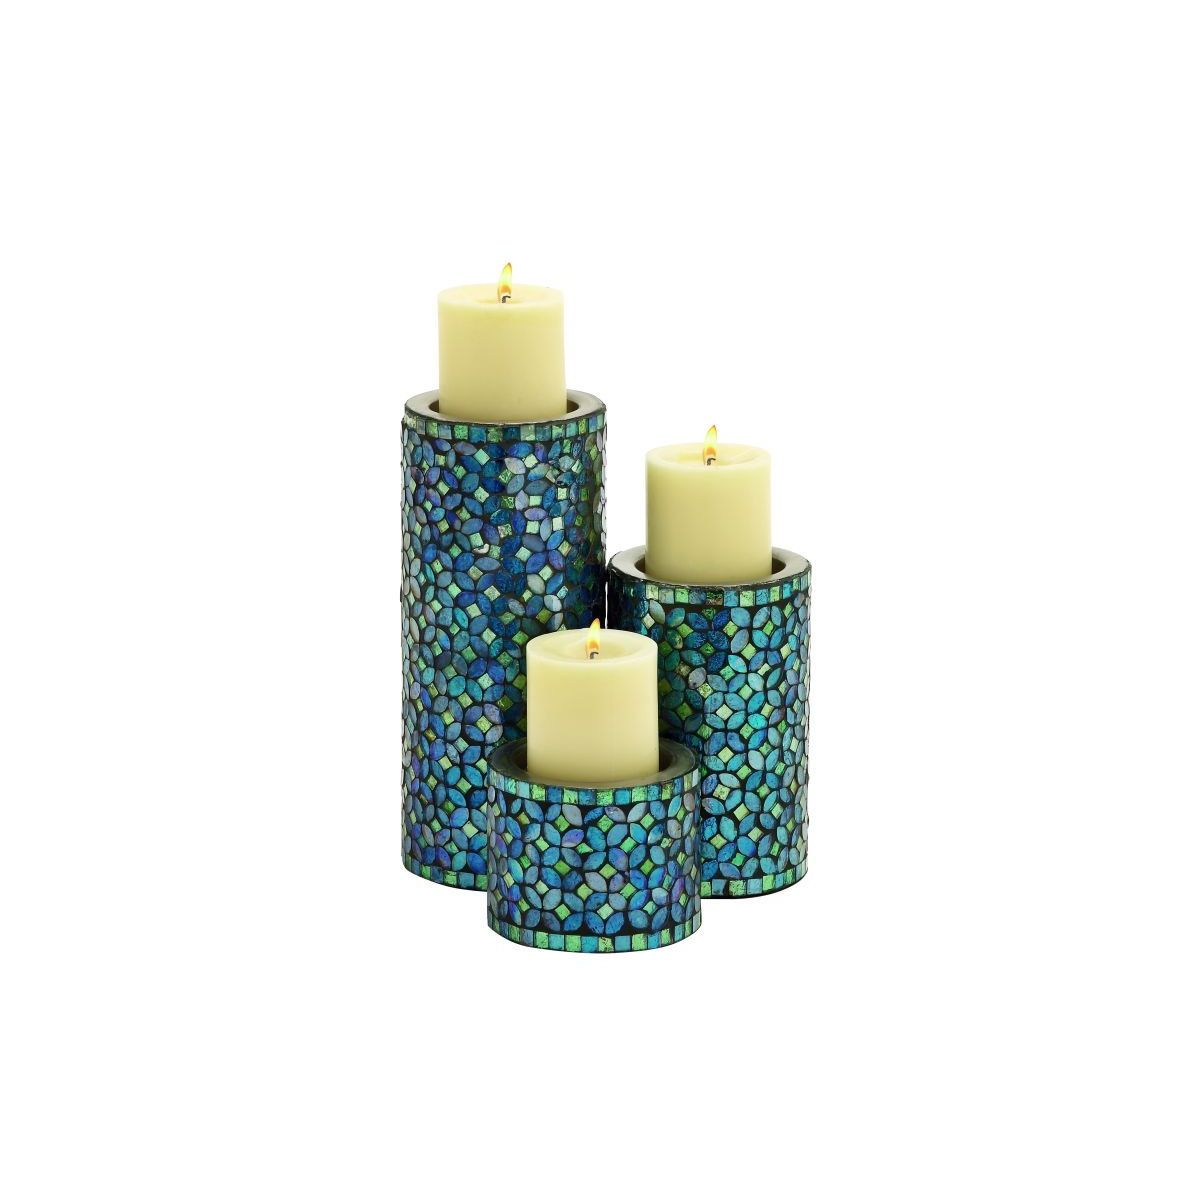 Metal Mosaic Candle Holder Set of 3 (10 inches x 7 inches x 4 inches H)